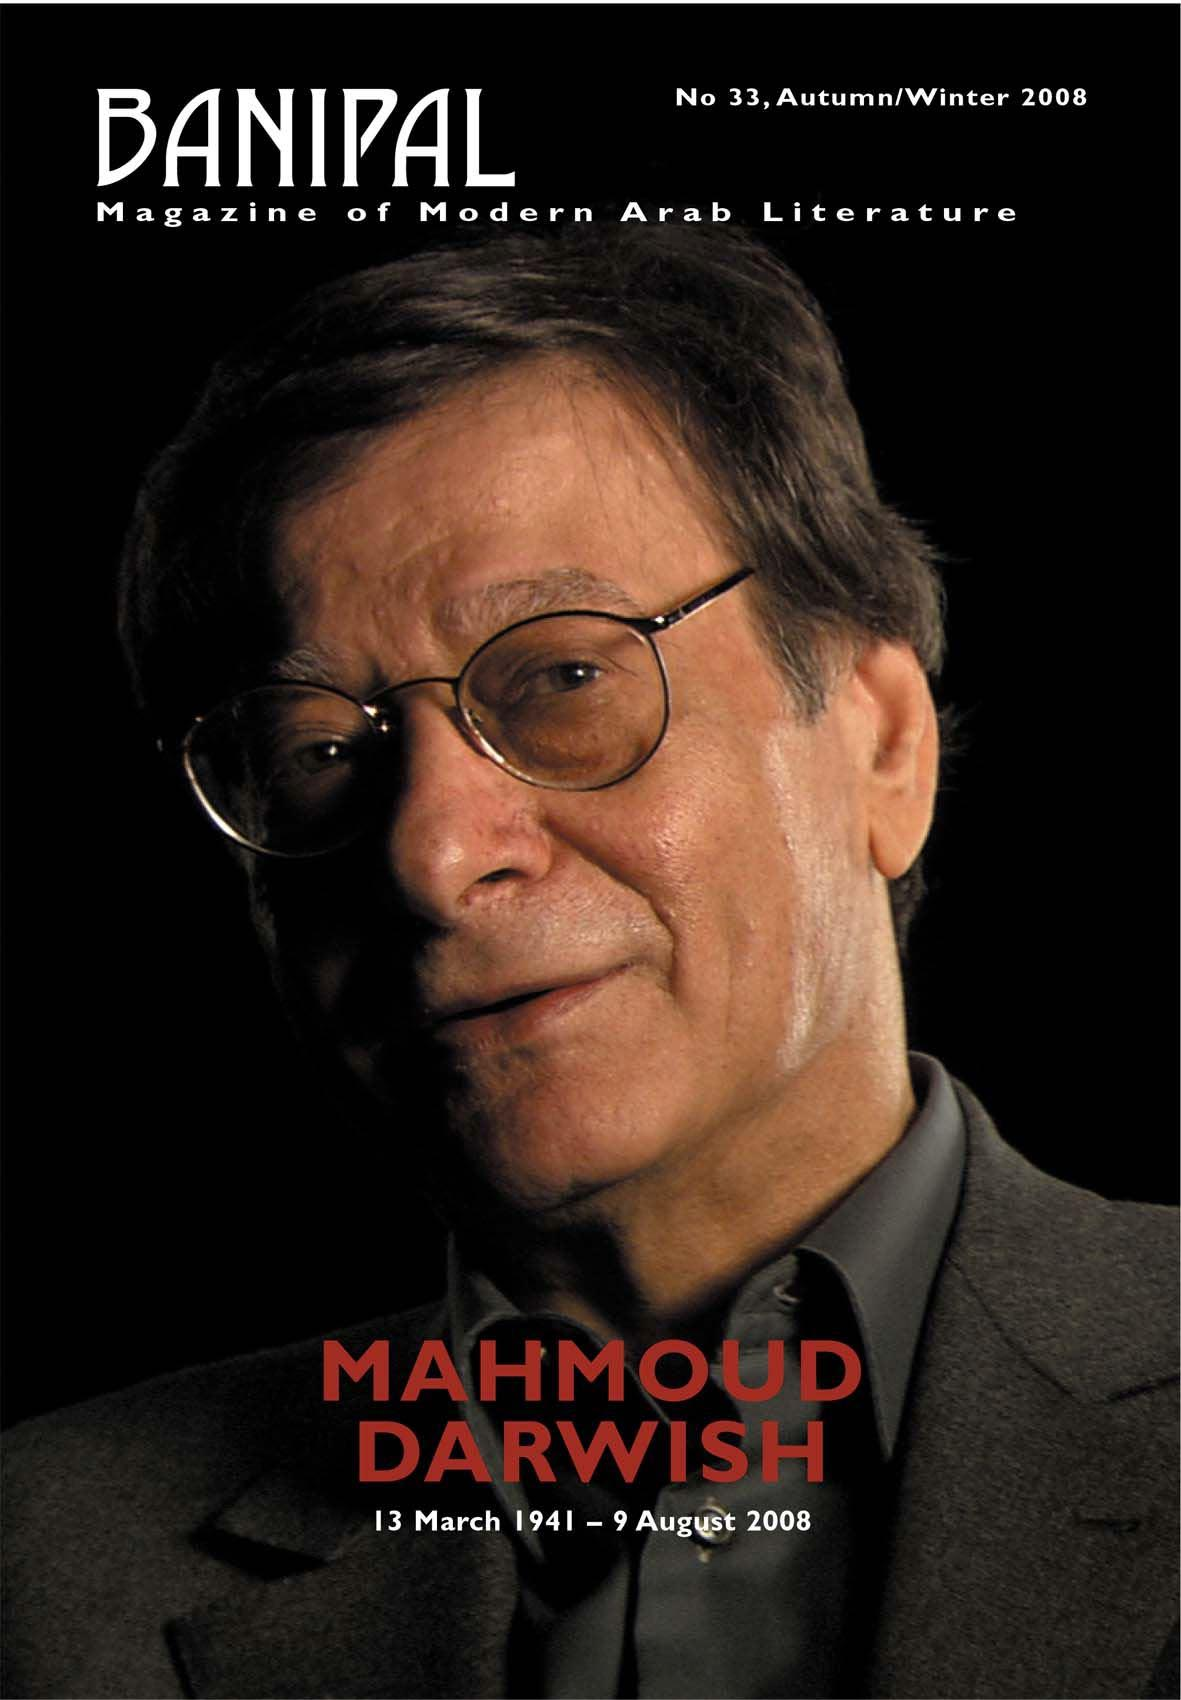 Banipal 33 front cover, tribute to Mahmoud Darwish